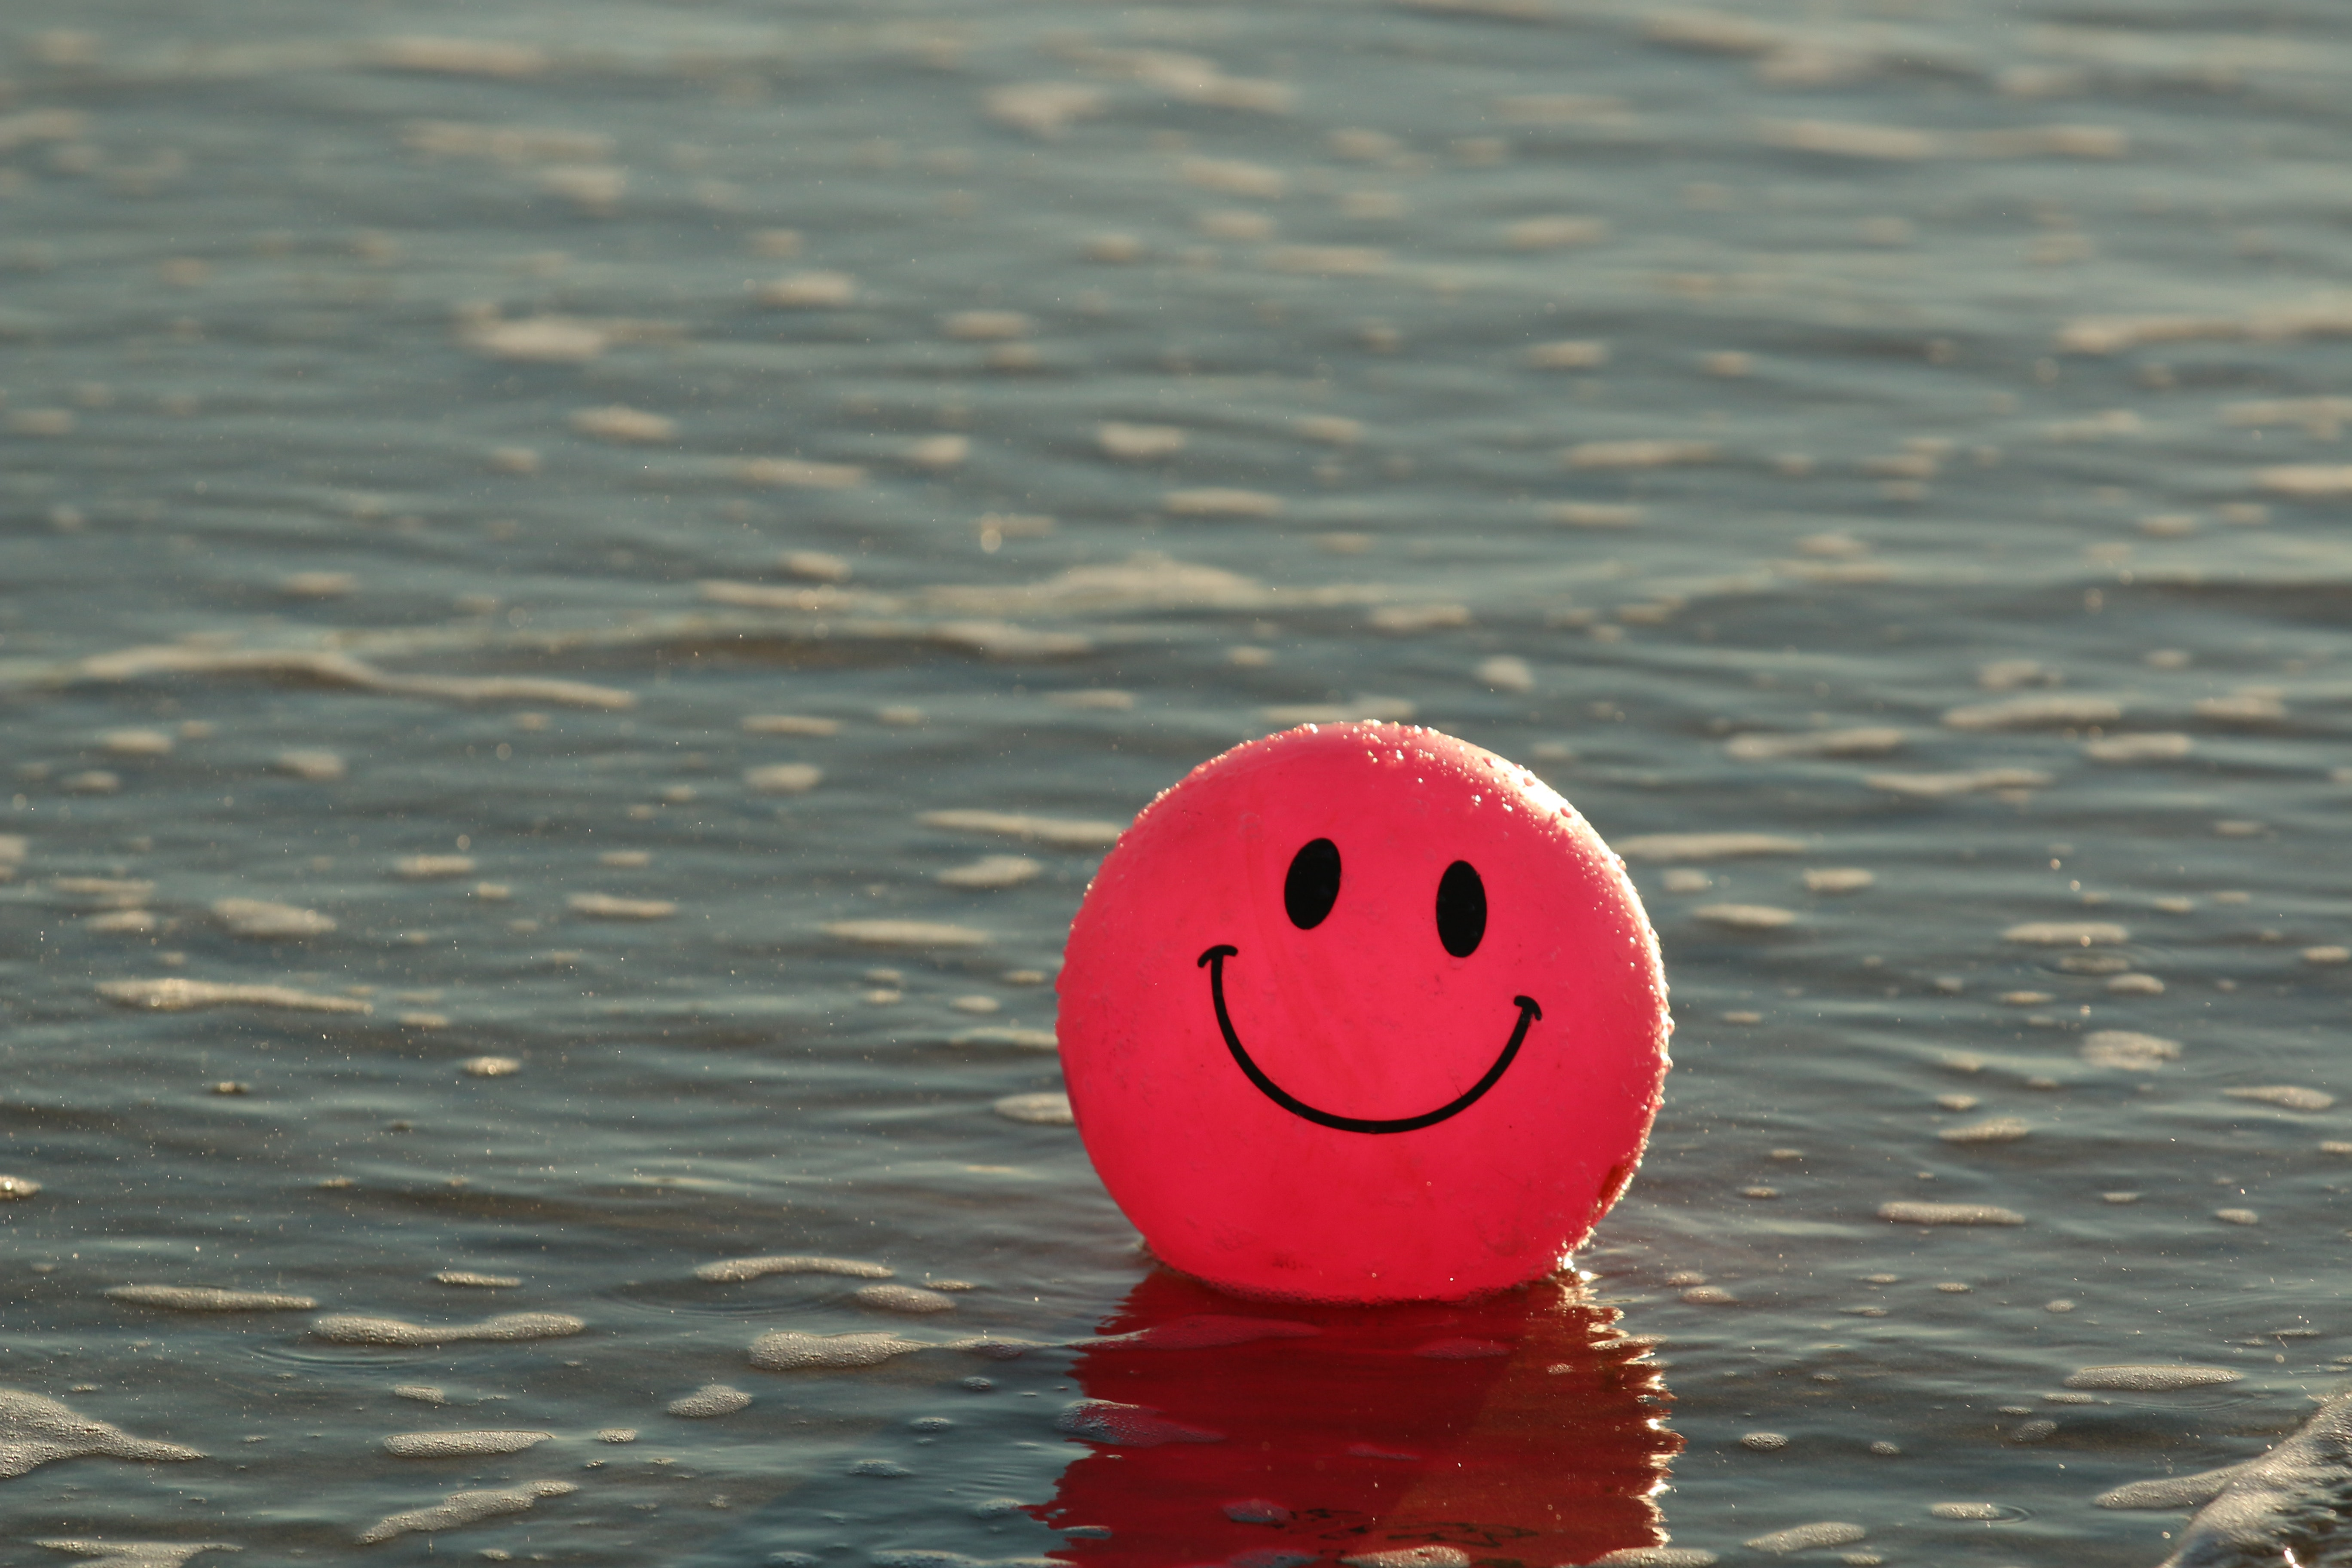 91714 download wallpaper Miscellaneous, Water, Miscellanea, Balloon, Smile, Emoticon, Smiley, Happy screensavers and pictures for free